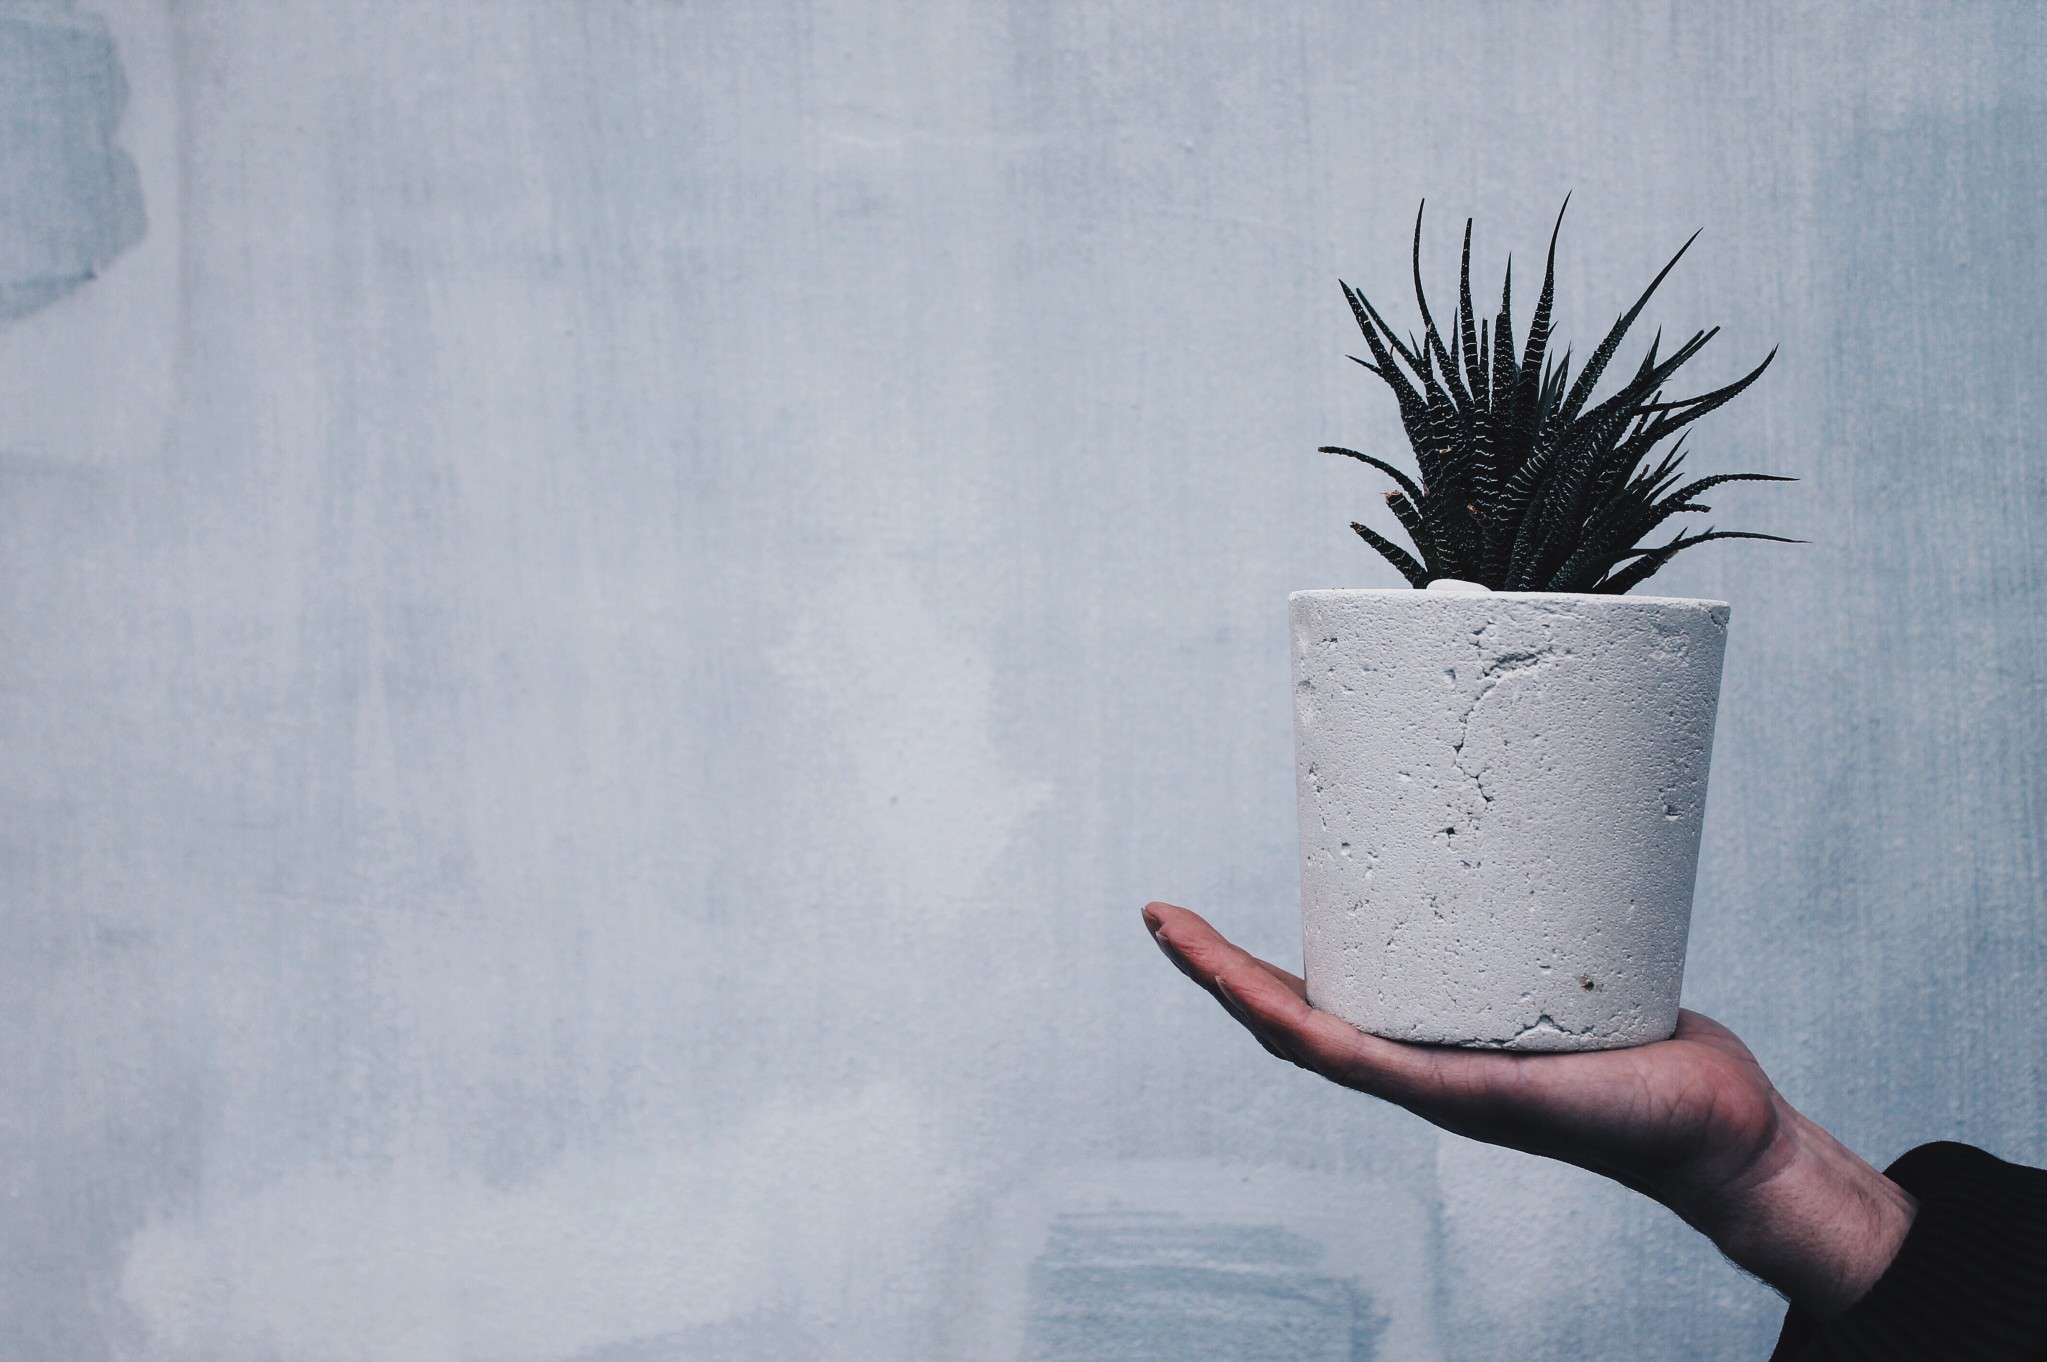 Hand holding a concrete planter with a spiky plant.